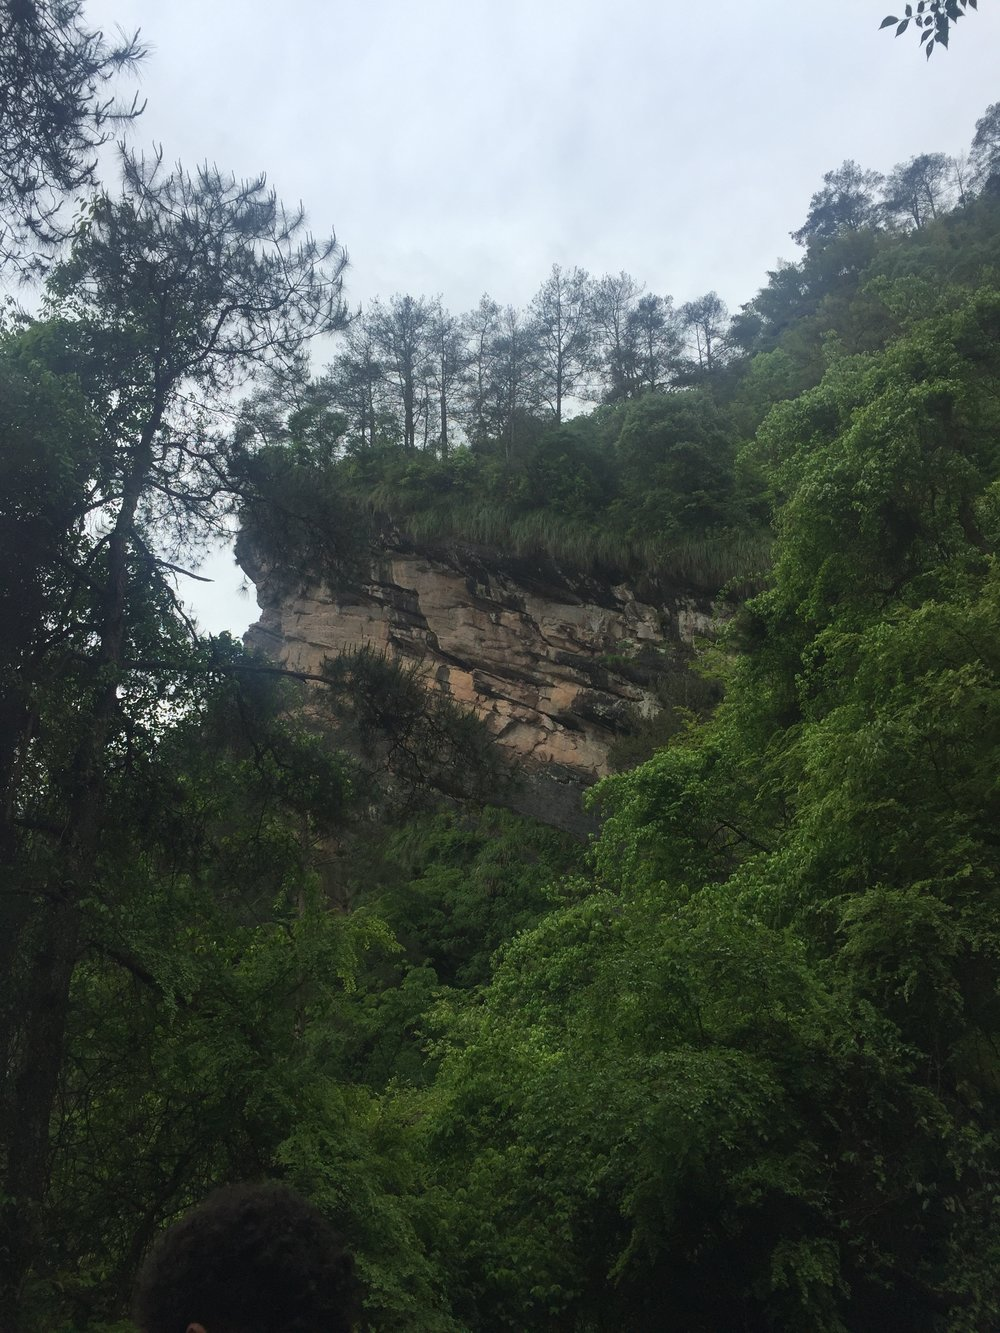 Wuyi Mountain.  Photo taken from our Sept 2015 visit.